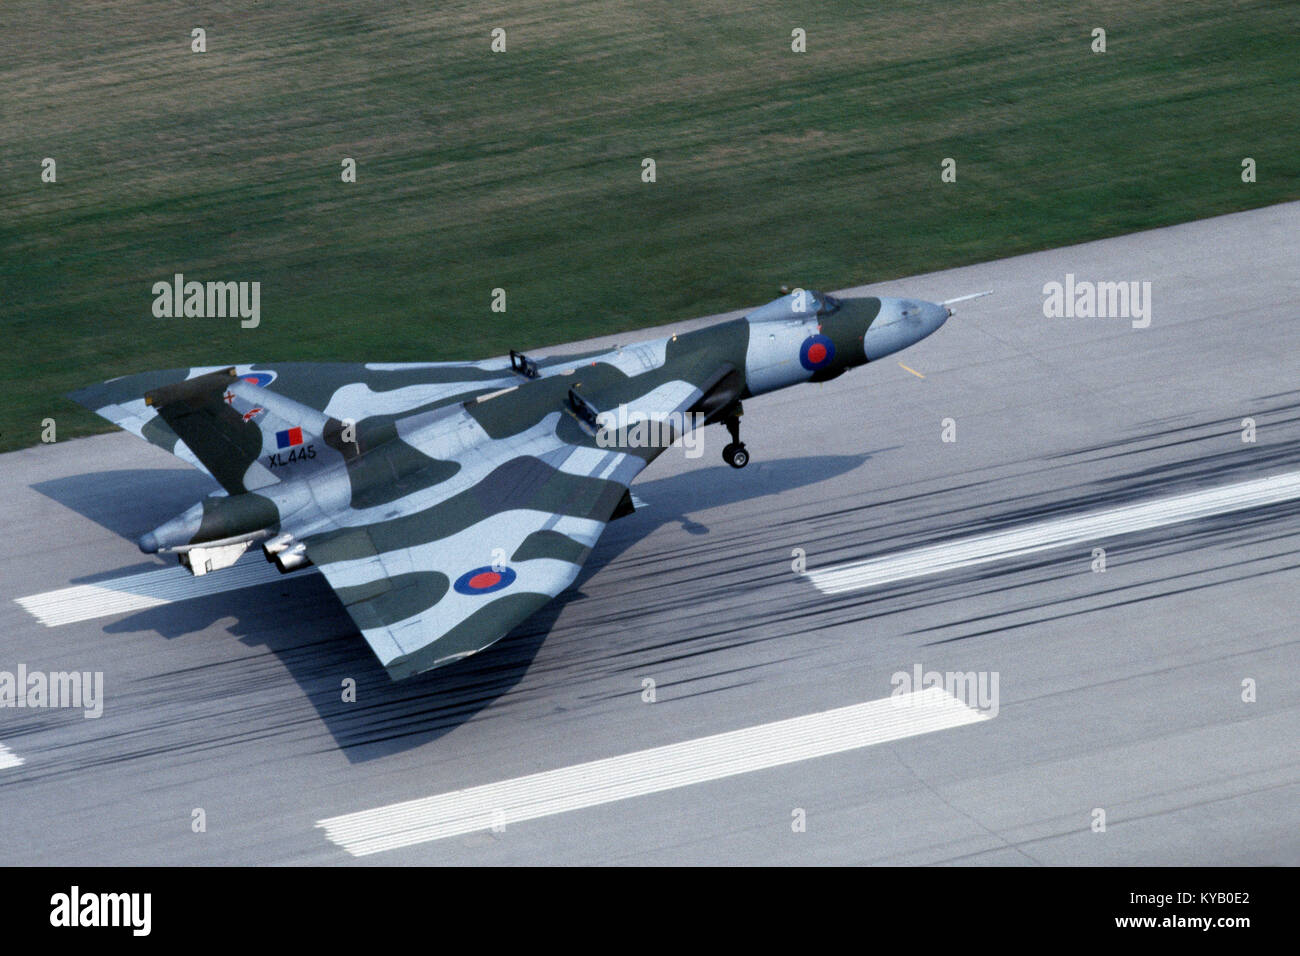 RAF Vulcan B2 aircraft on touch down at Toronto International airport, Canada - Stock Image